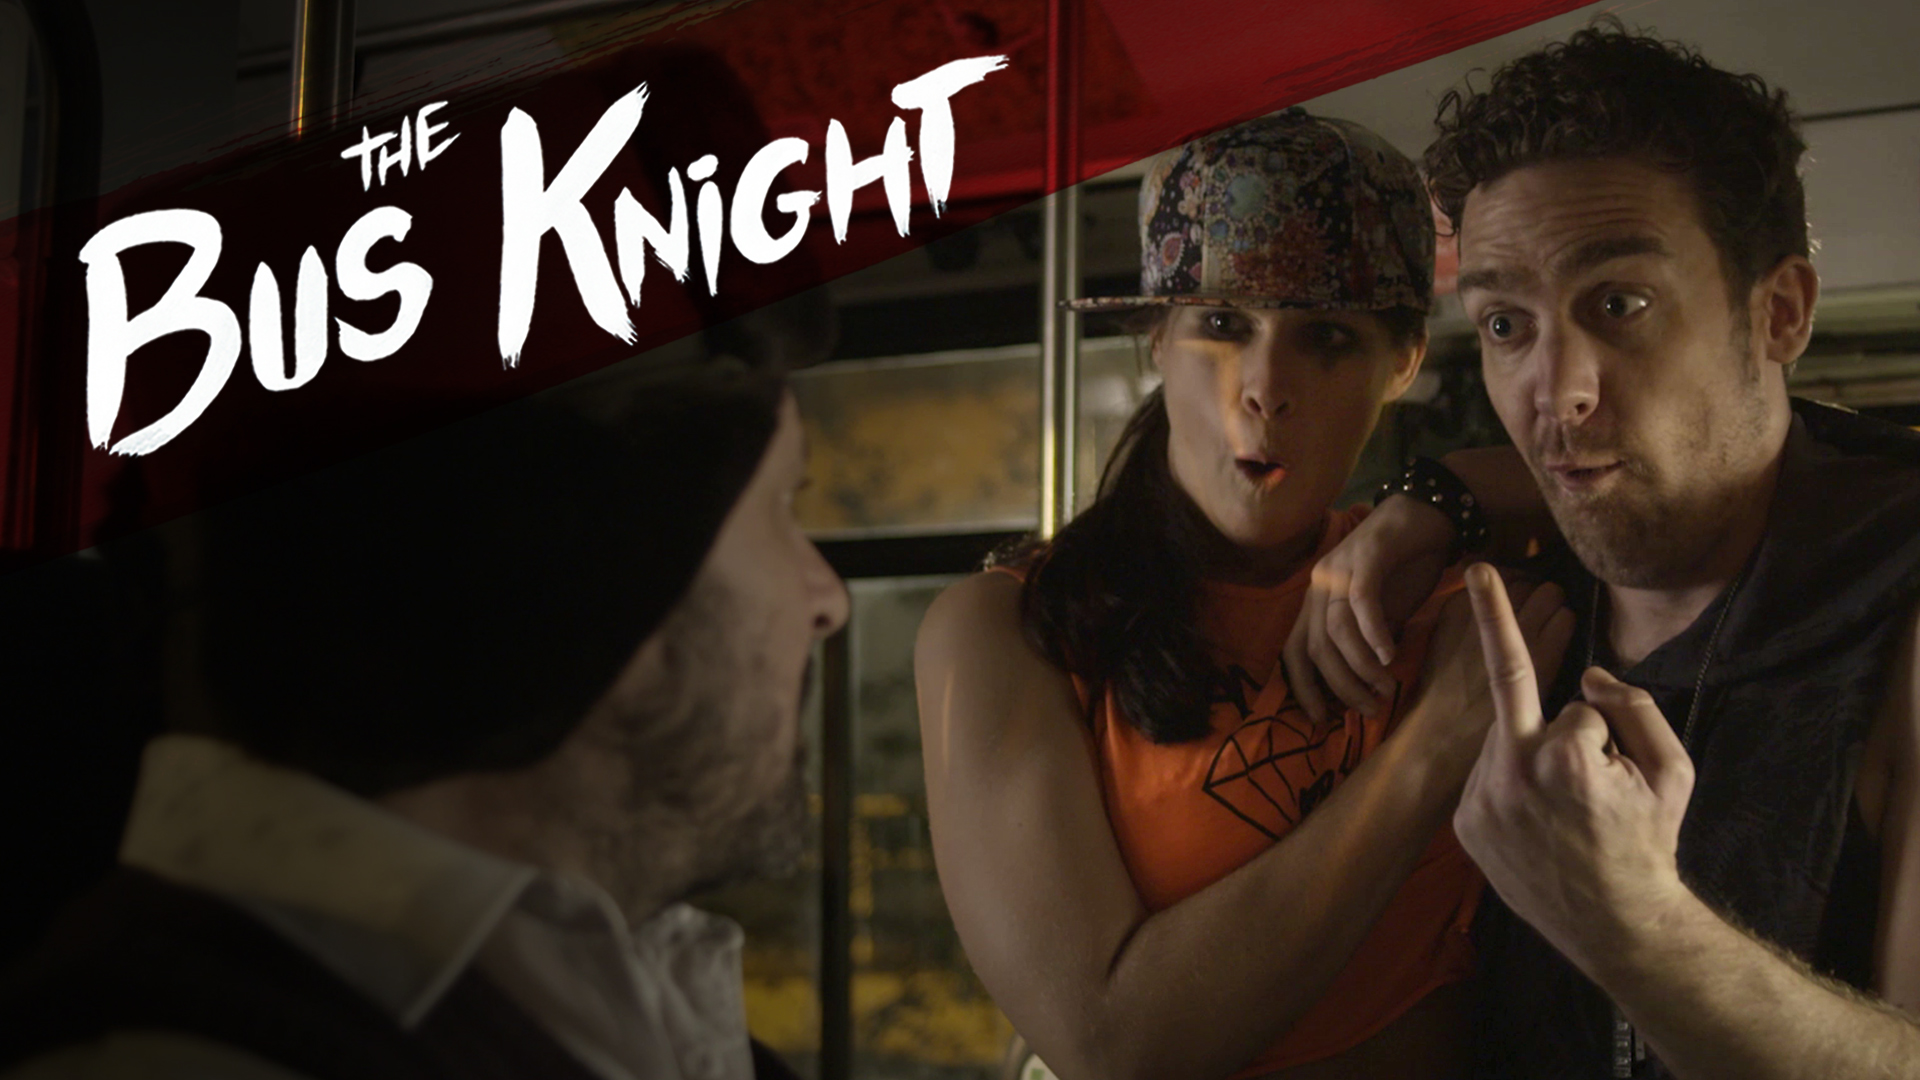 The-Bus-Knight-Short-Matthew-Sawyer-Editing